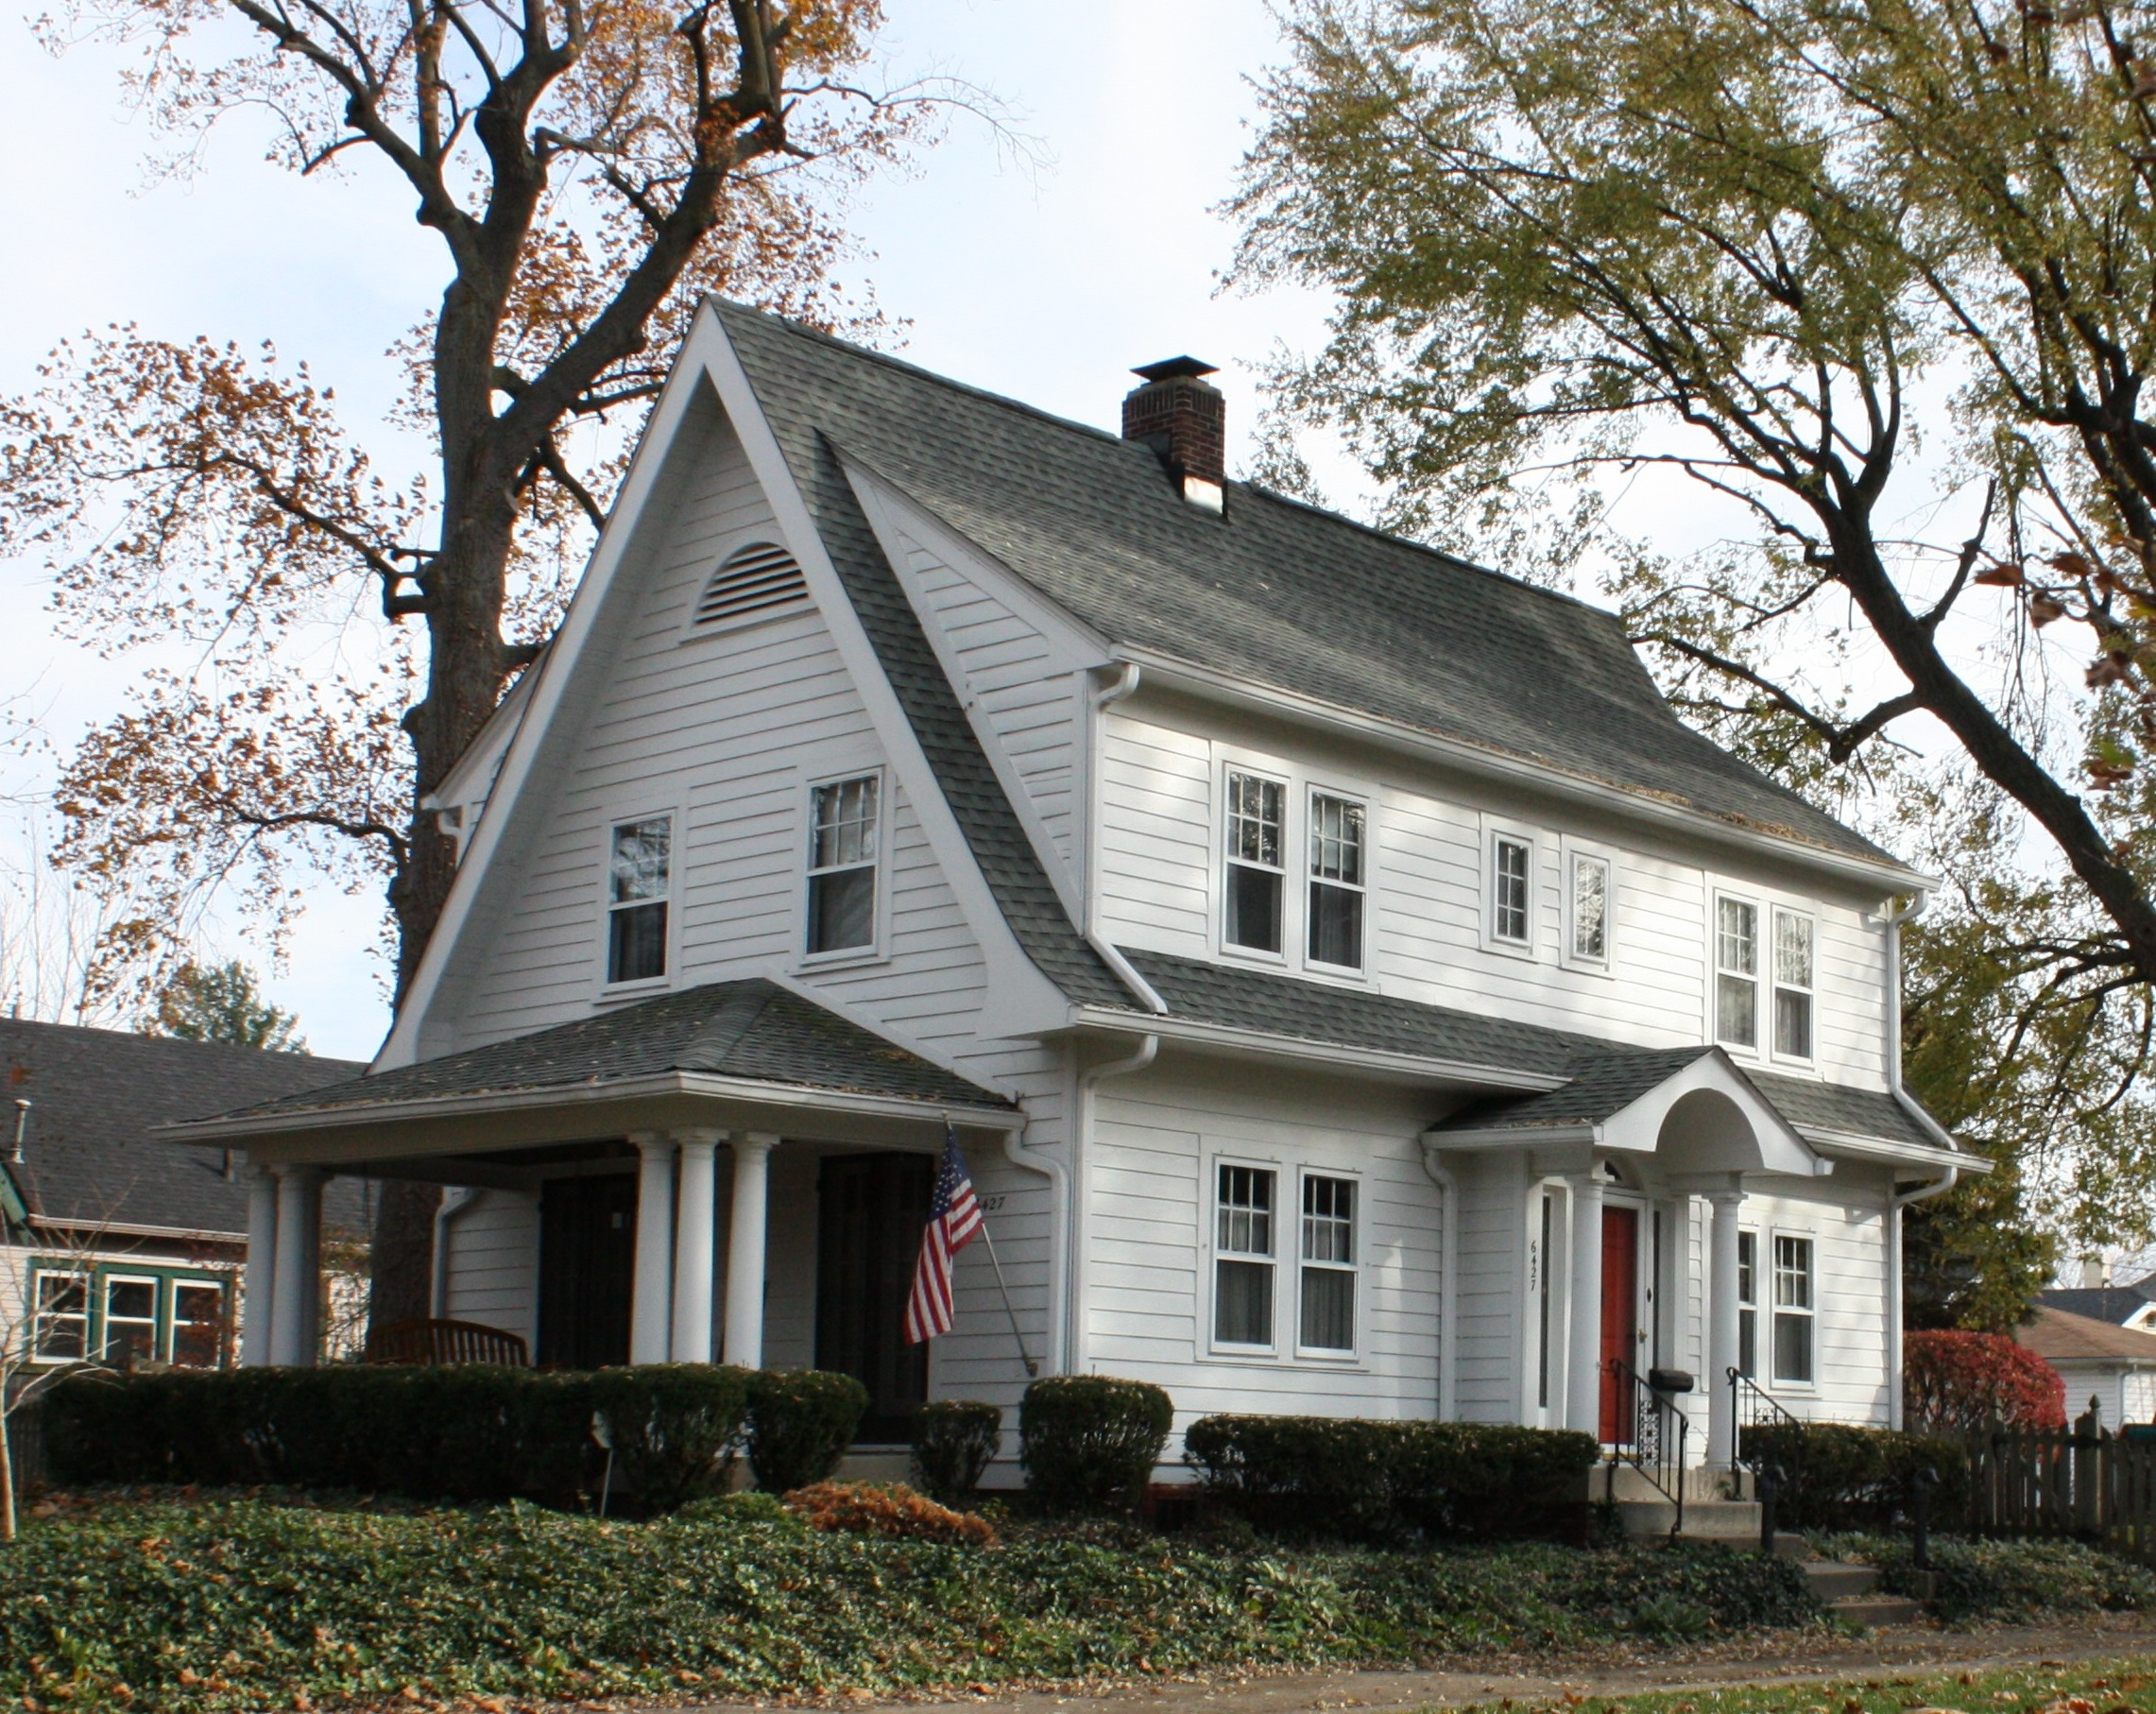 Building Language: Colonial Revival